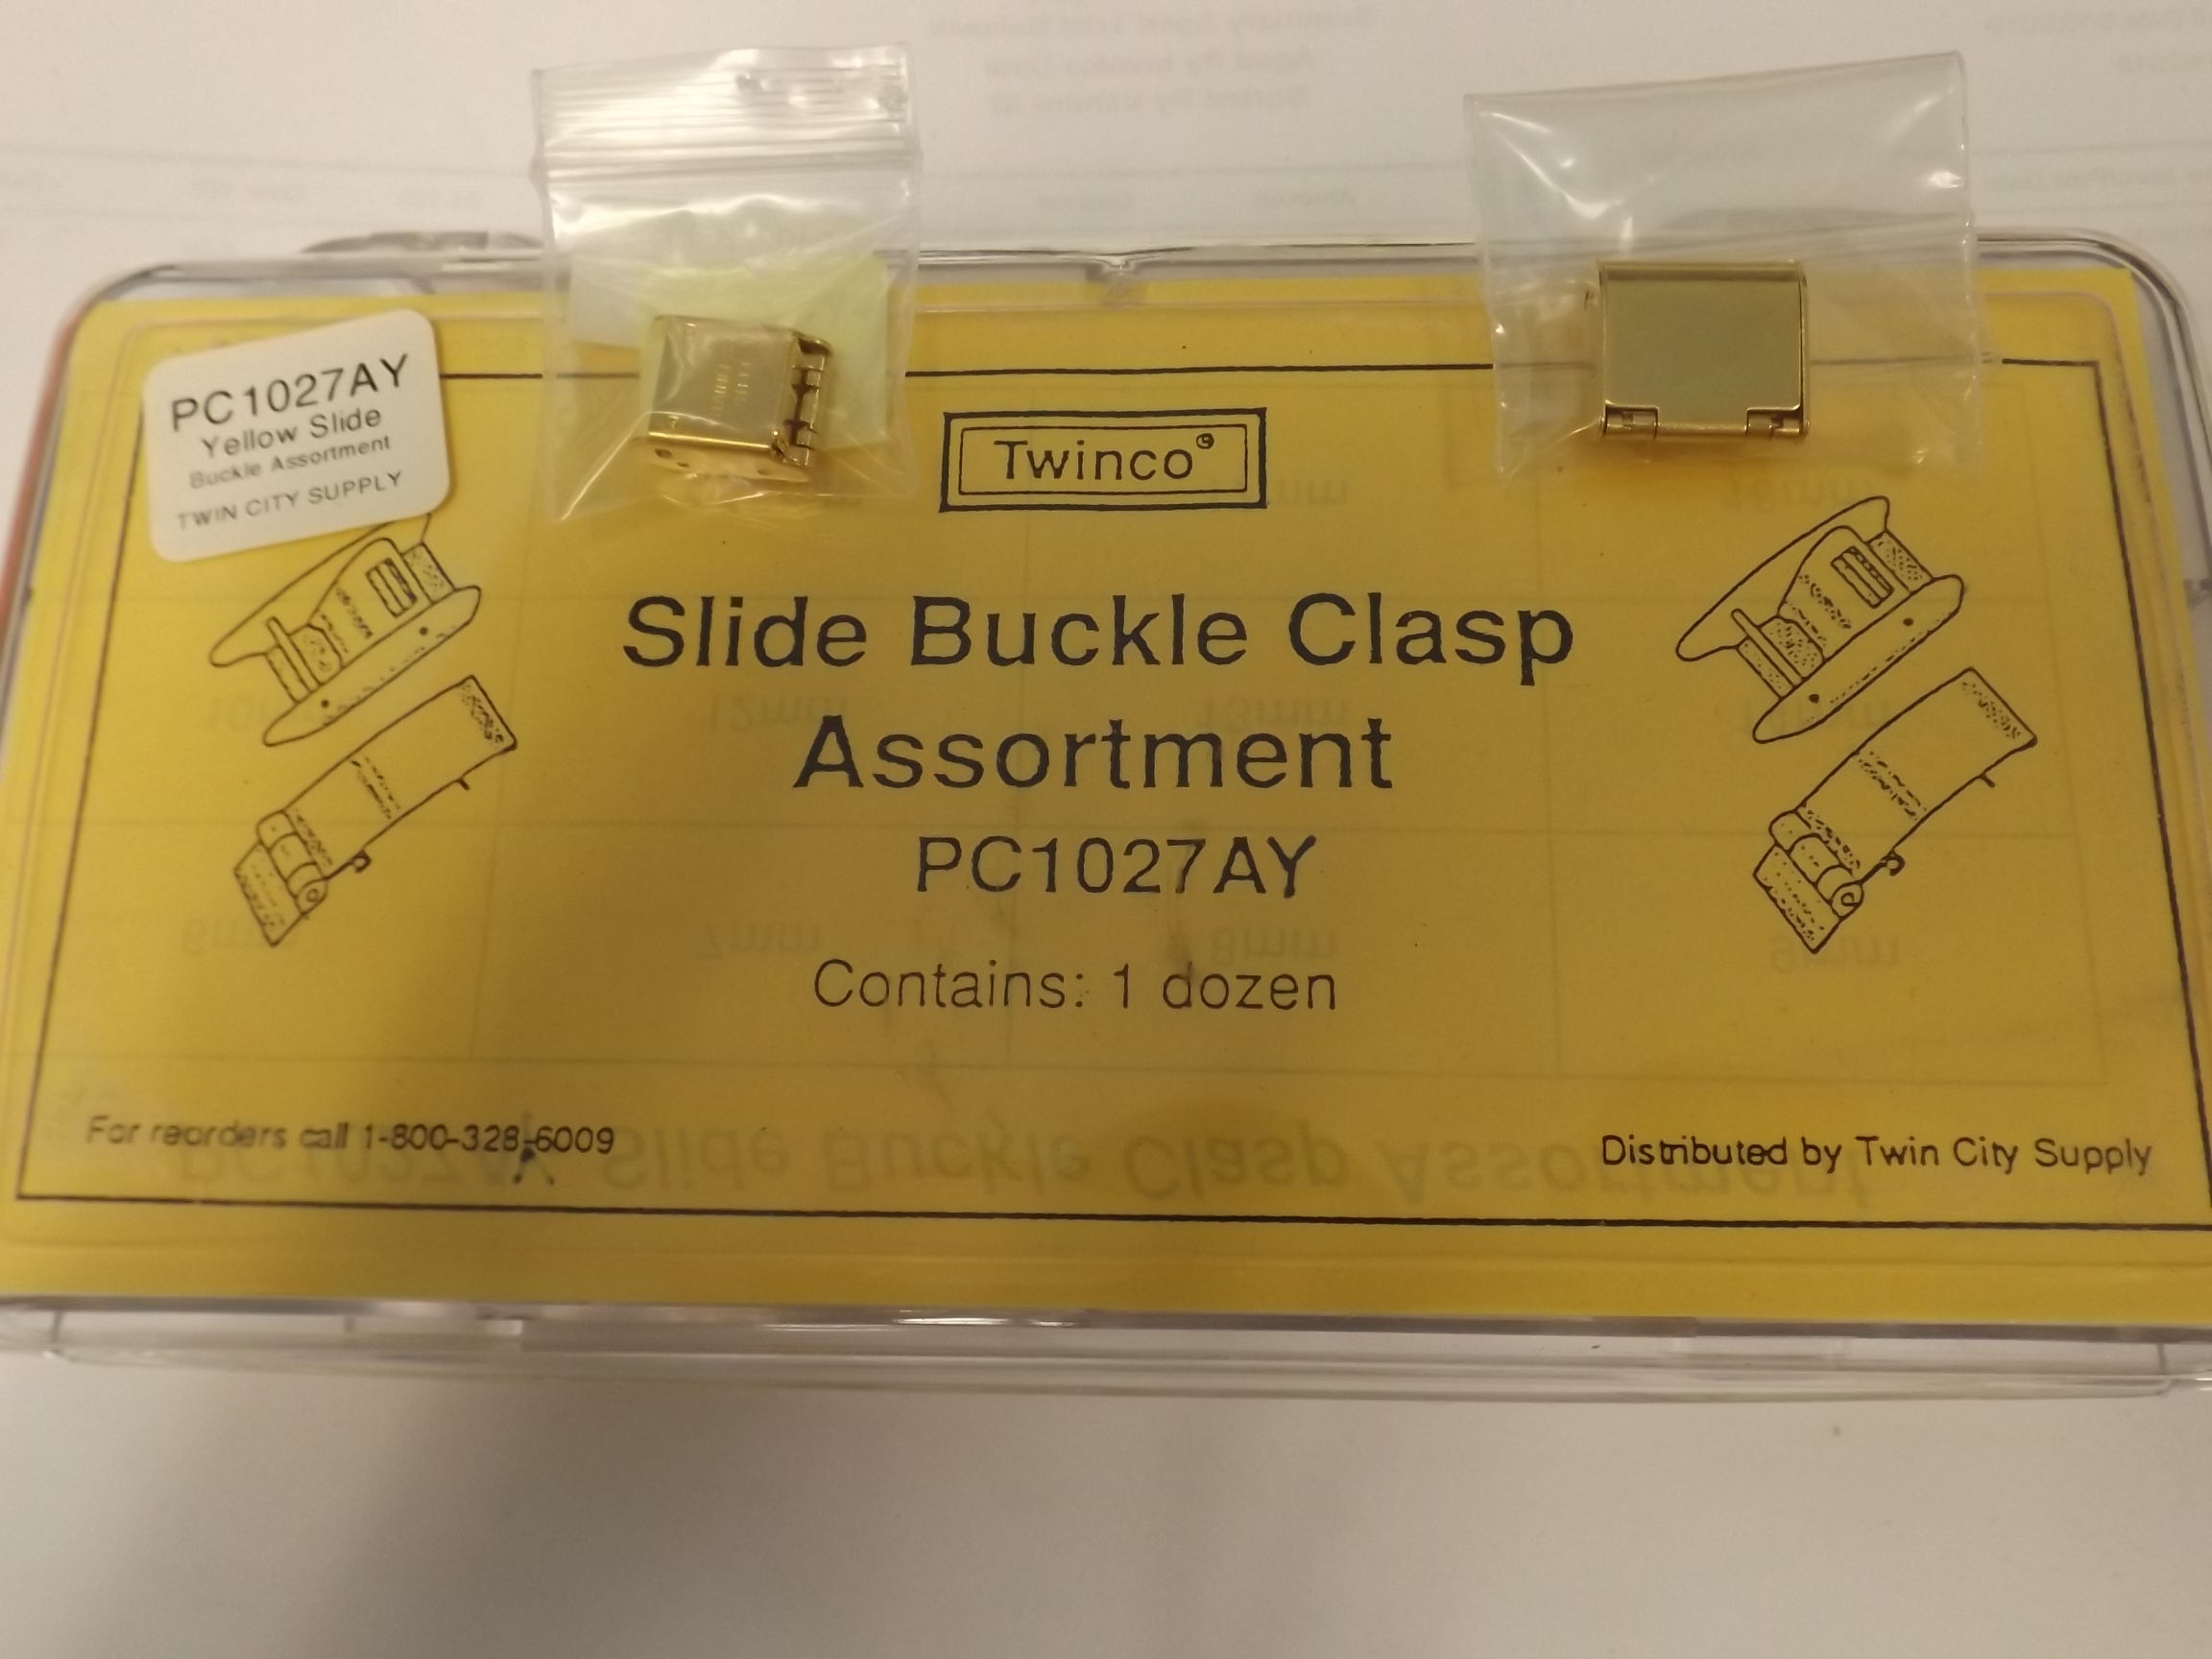 PC1027AY Replacement Slide Buckle Clasp Assortment-12 pieces, Yellow